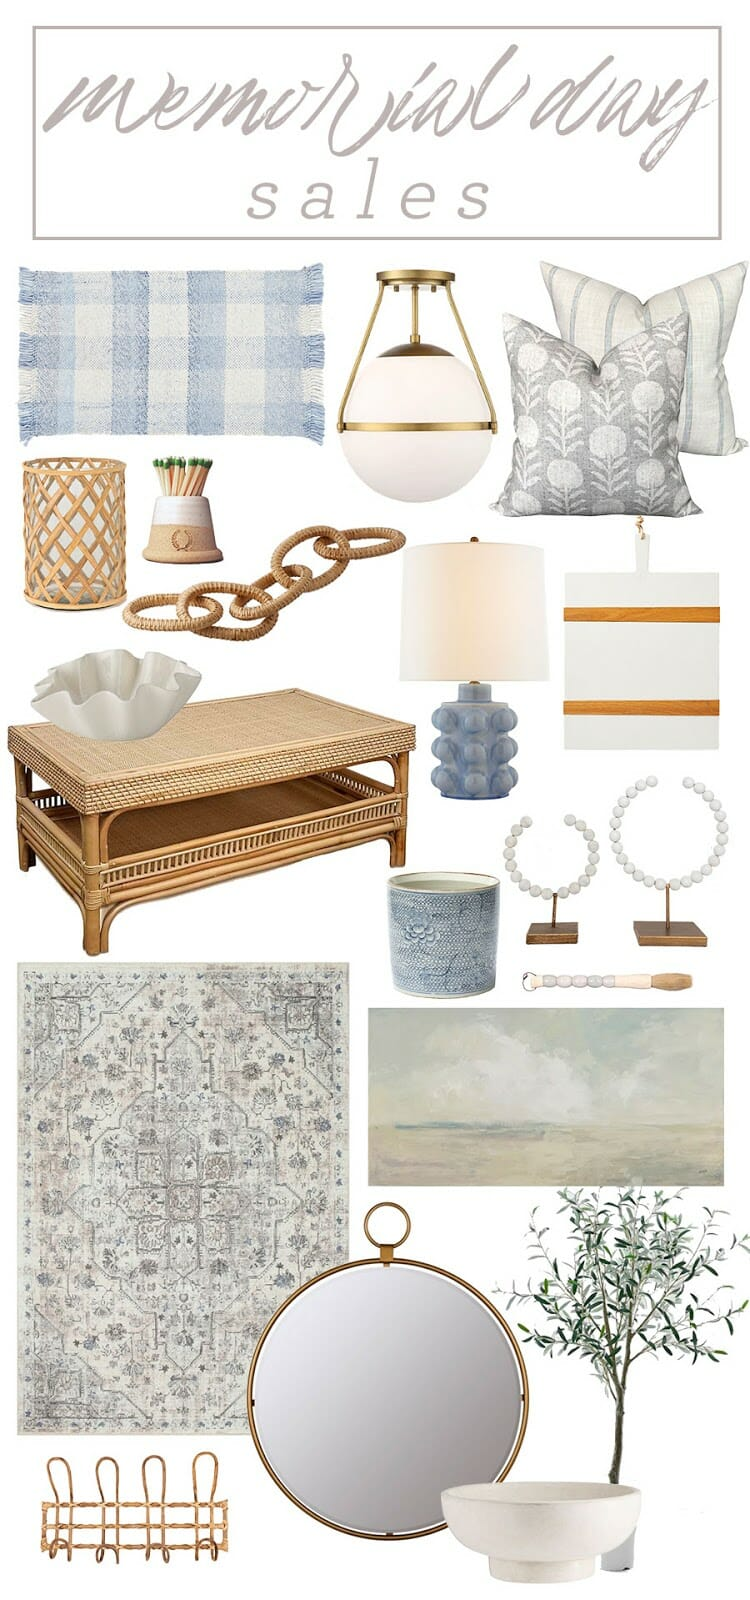 Memorial Day Home Decor and Furniture Sales